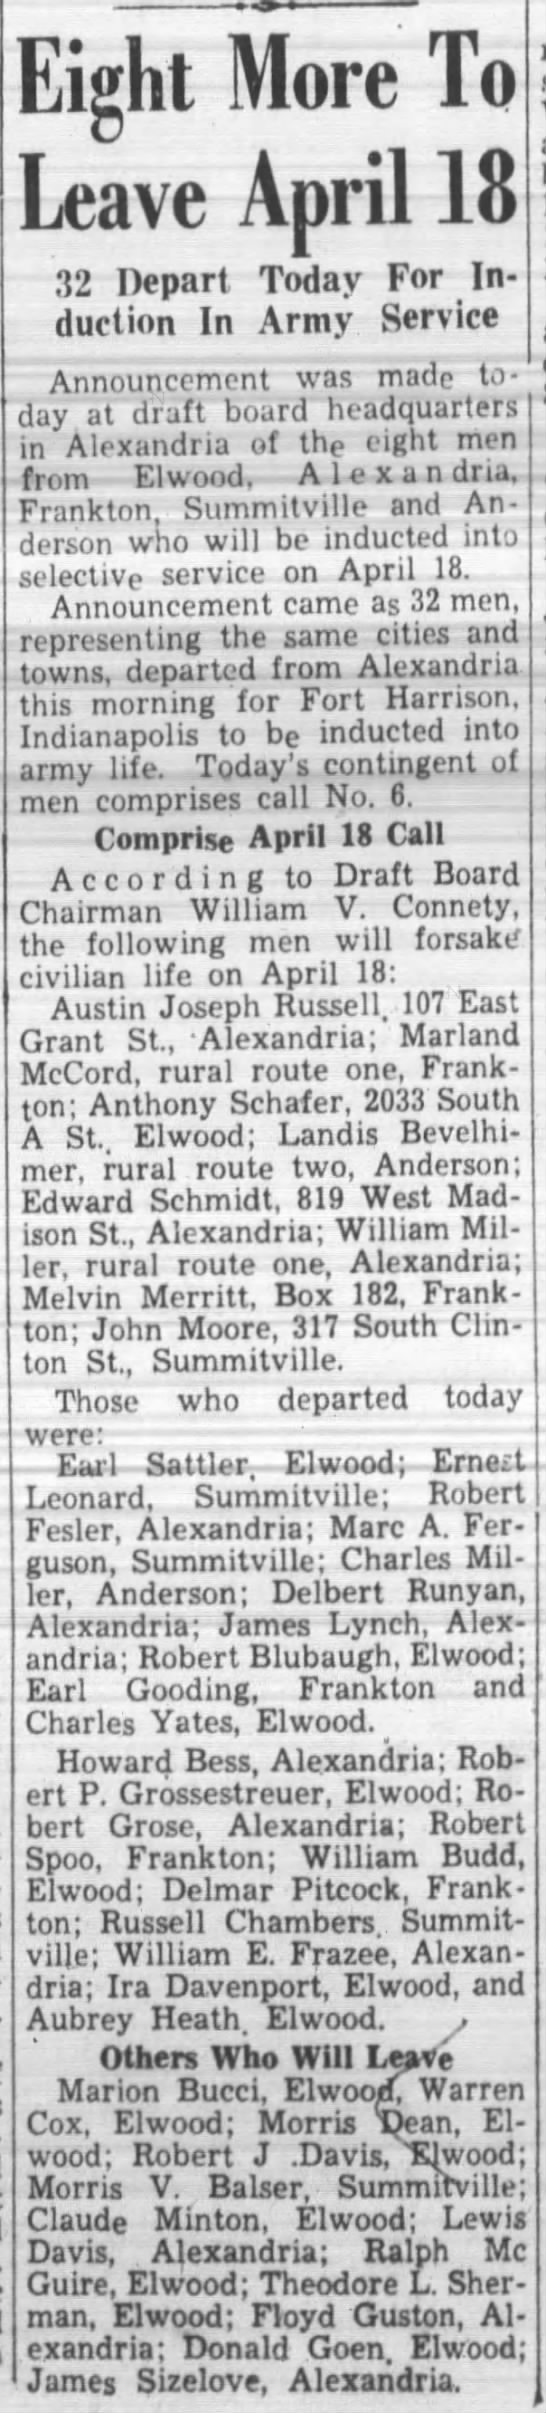 Robert P Grossestreuer departs April 5, 1941 for Army induction